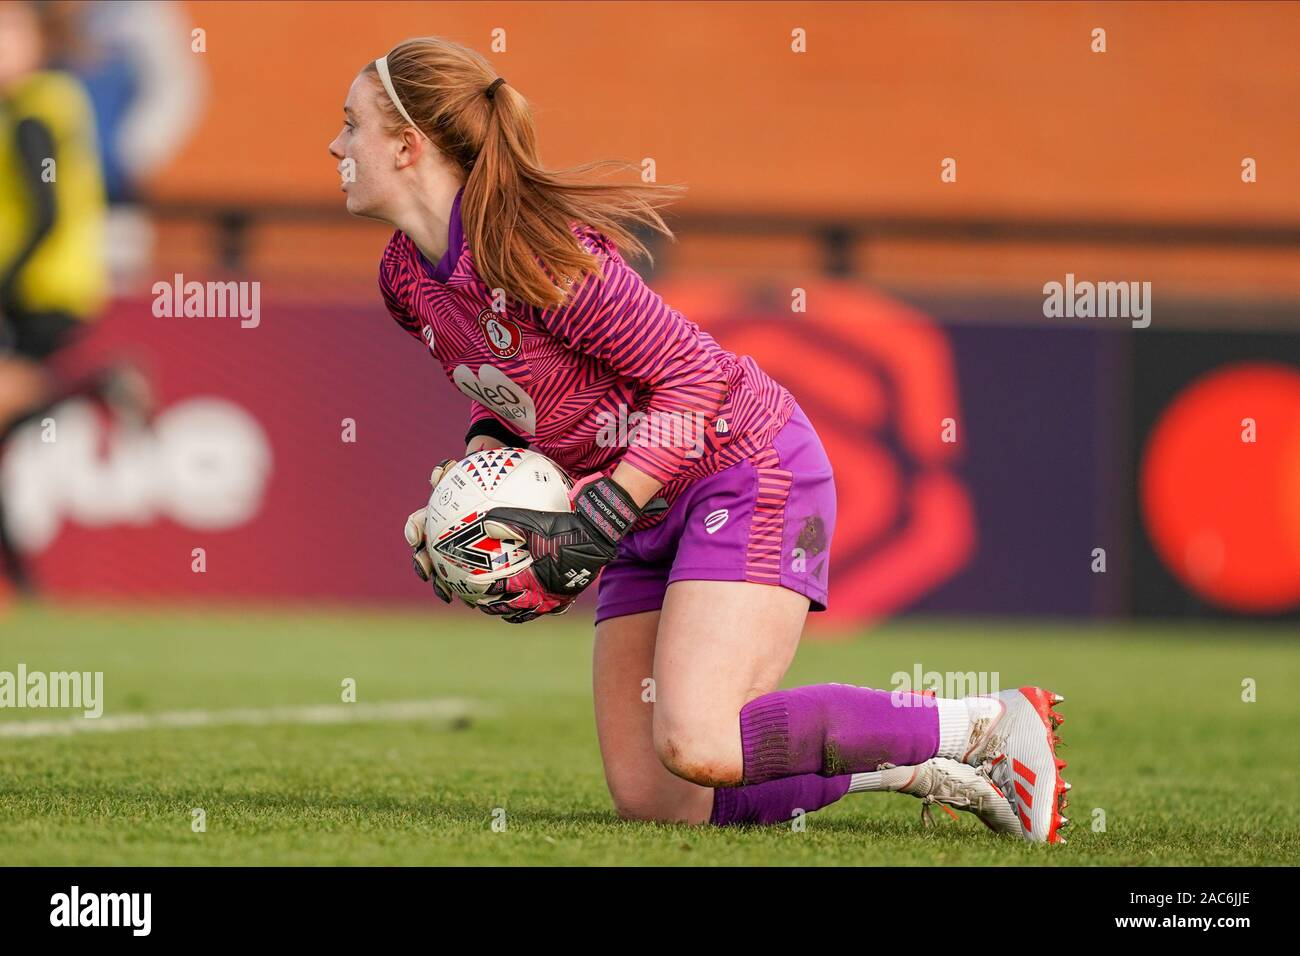 Borehamwood, UK. 1st Dec 2019. Goalkeeper Sophie Baggaley of ...